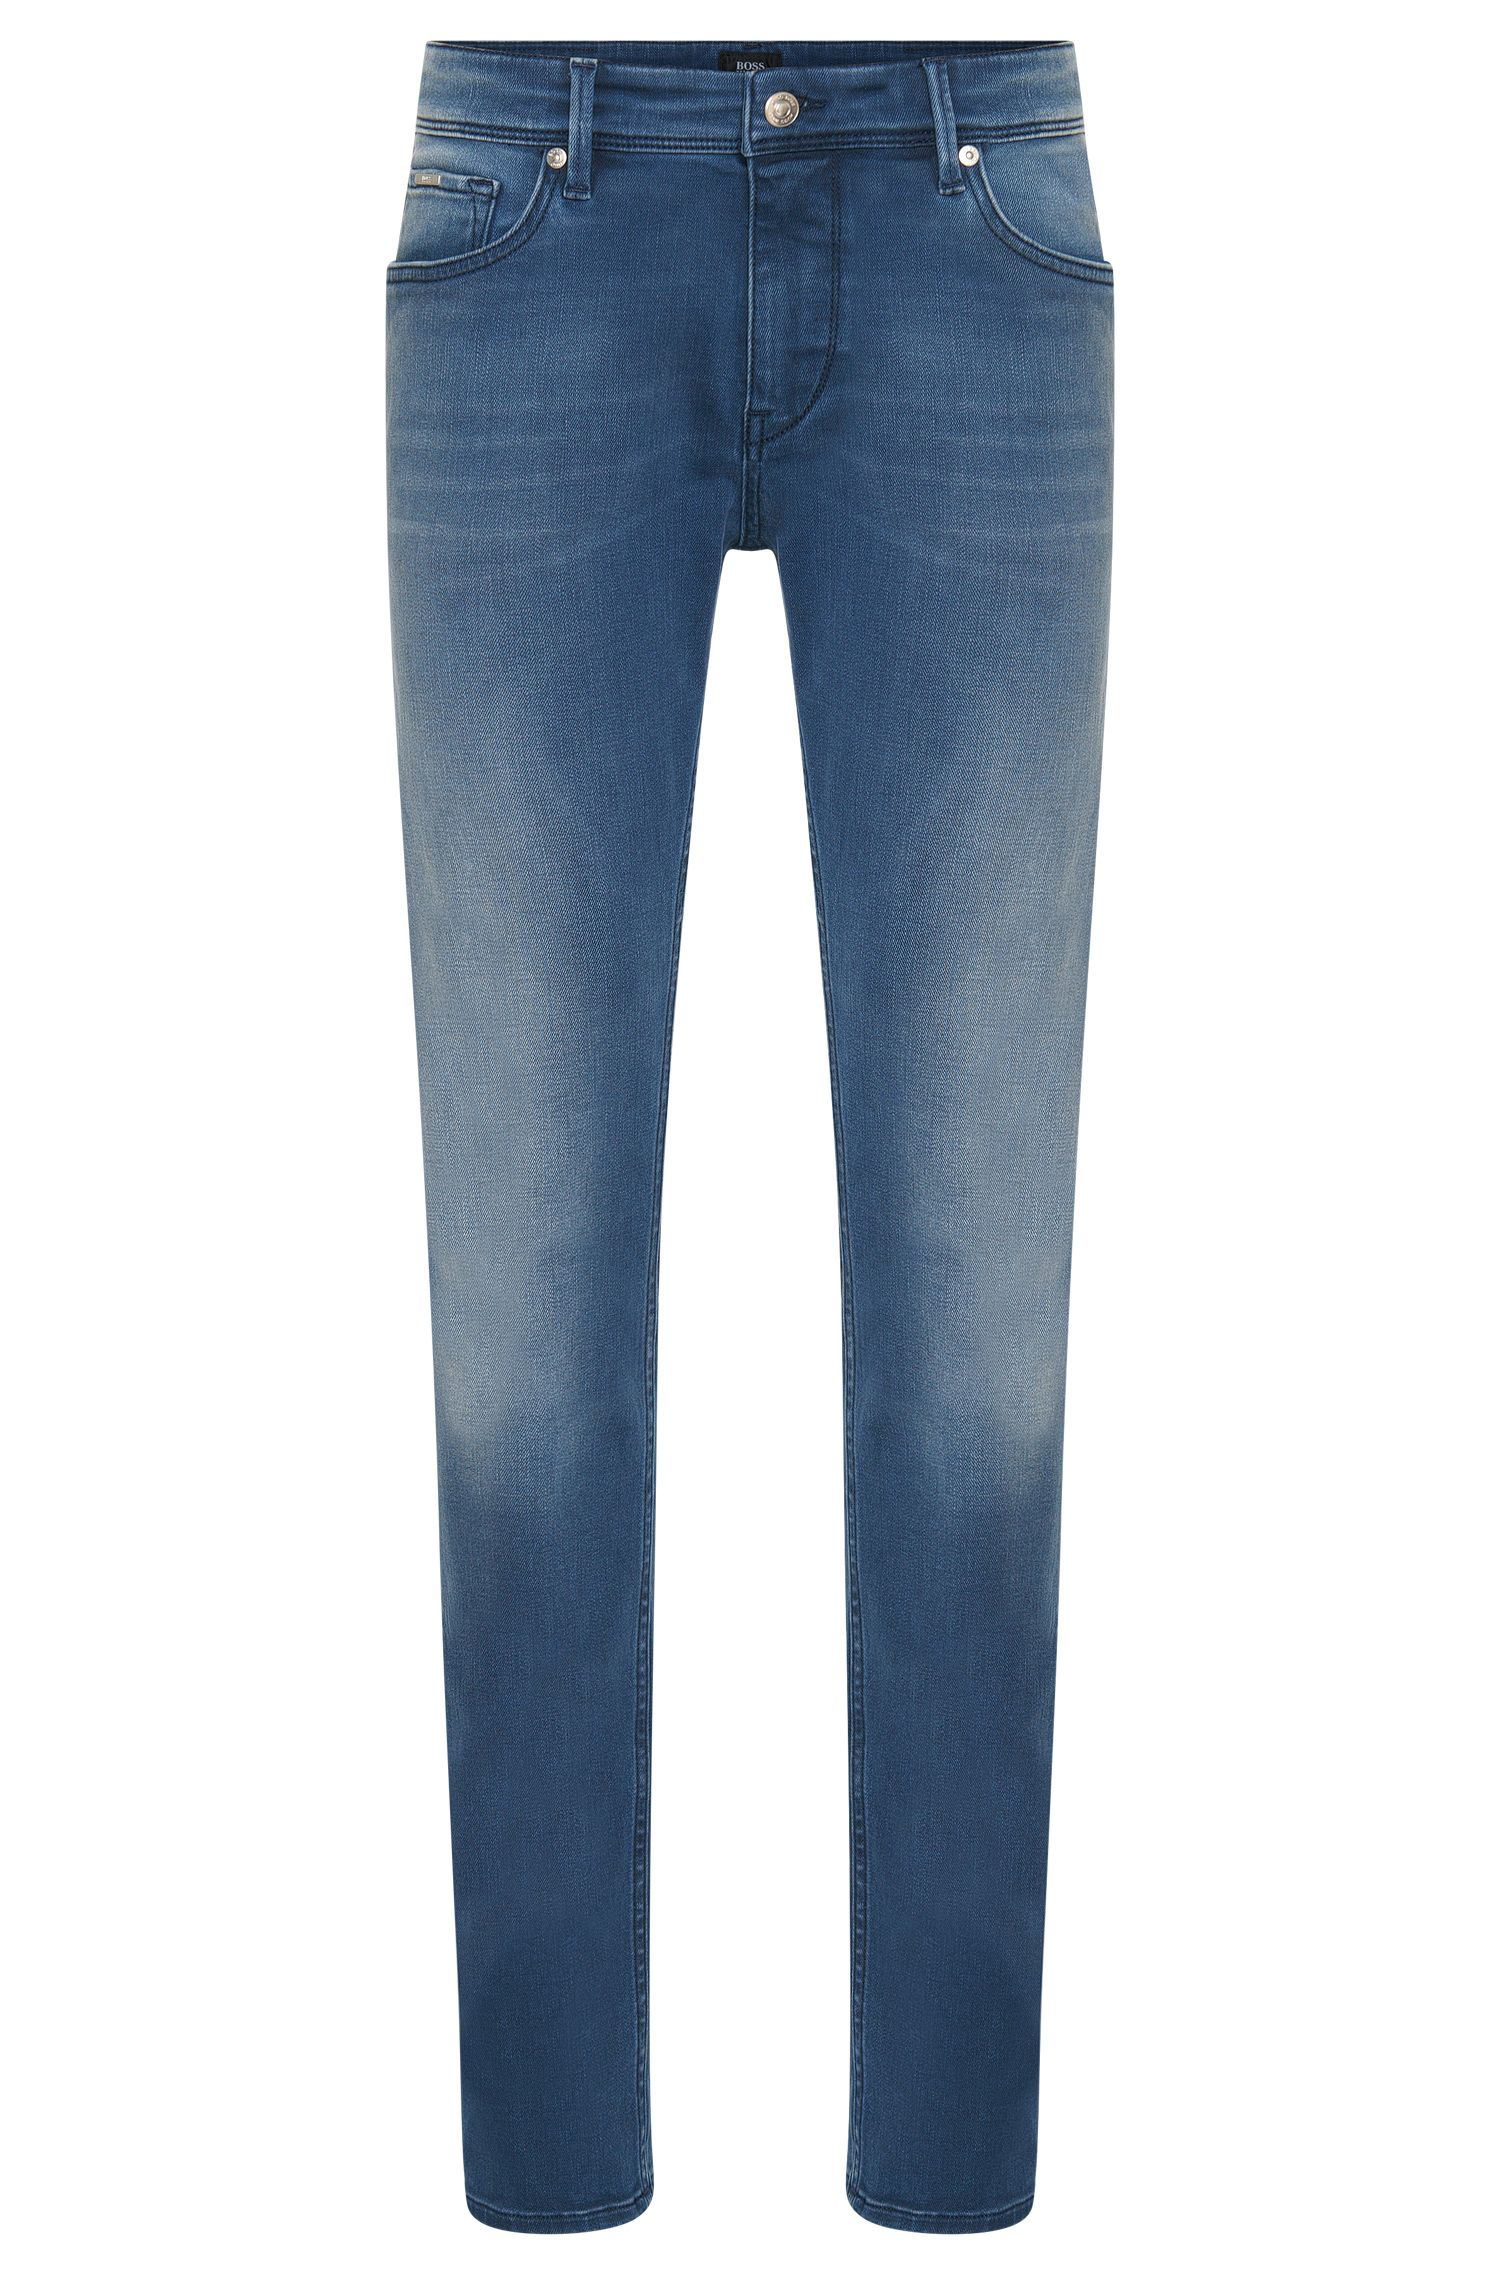 Jeans Slim Fit en coton extensible : « Charleston3 »